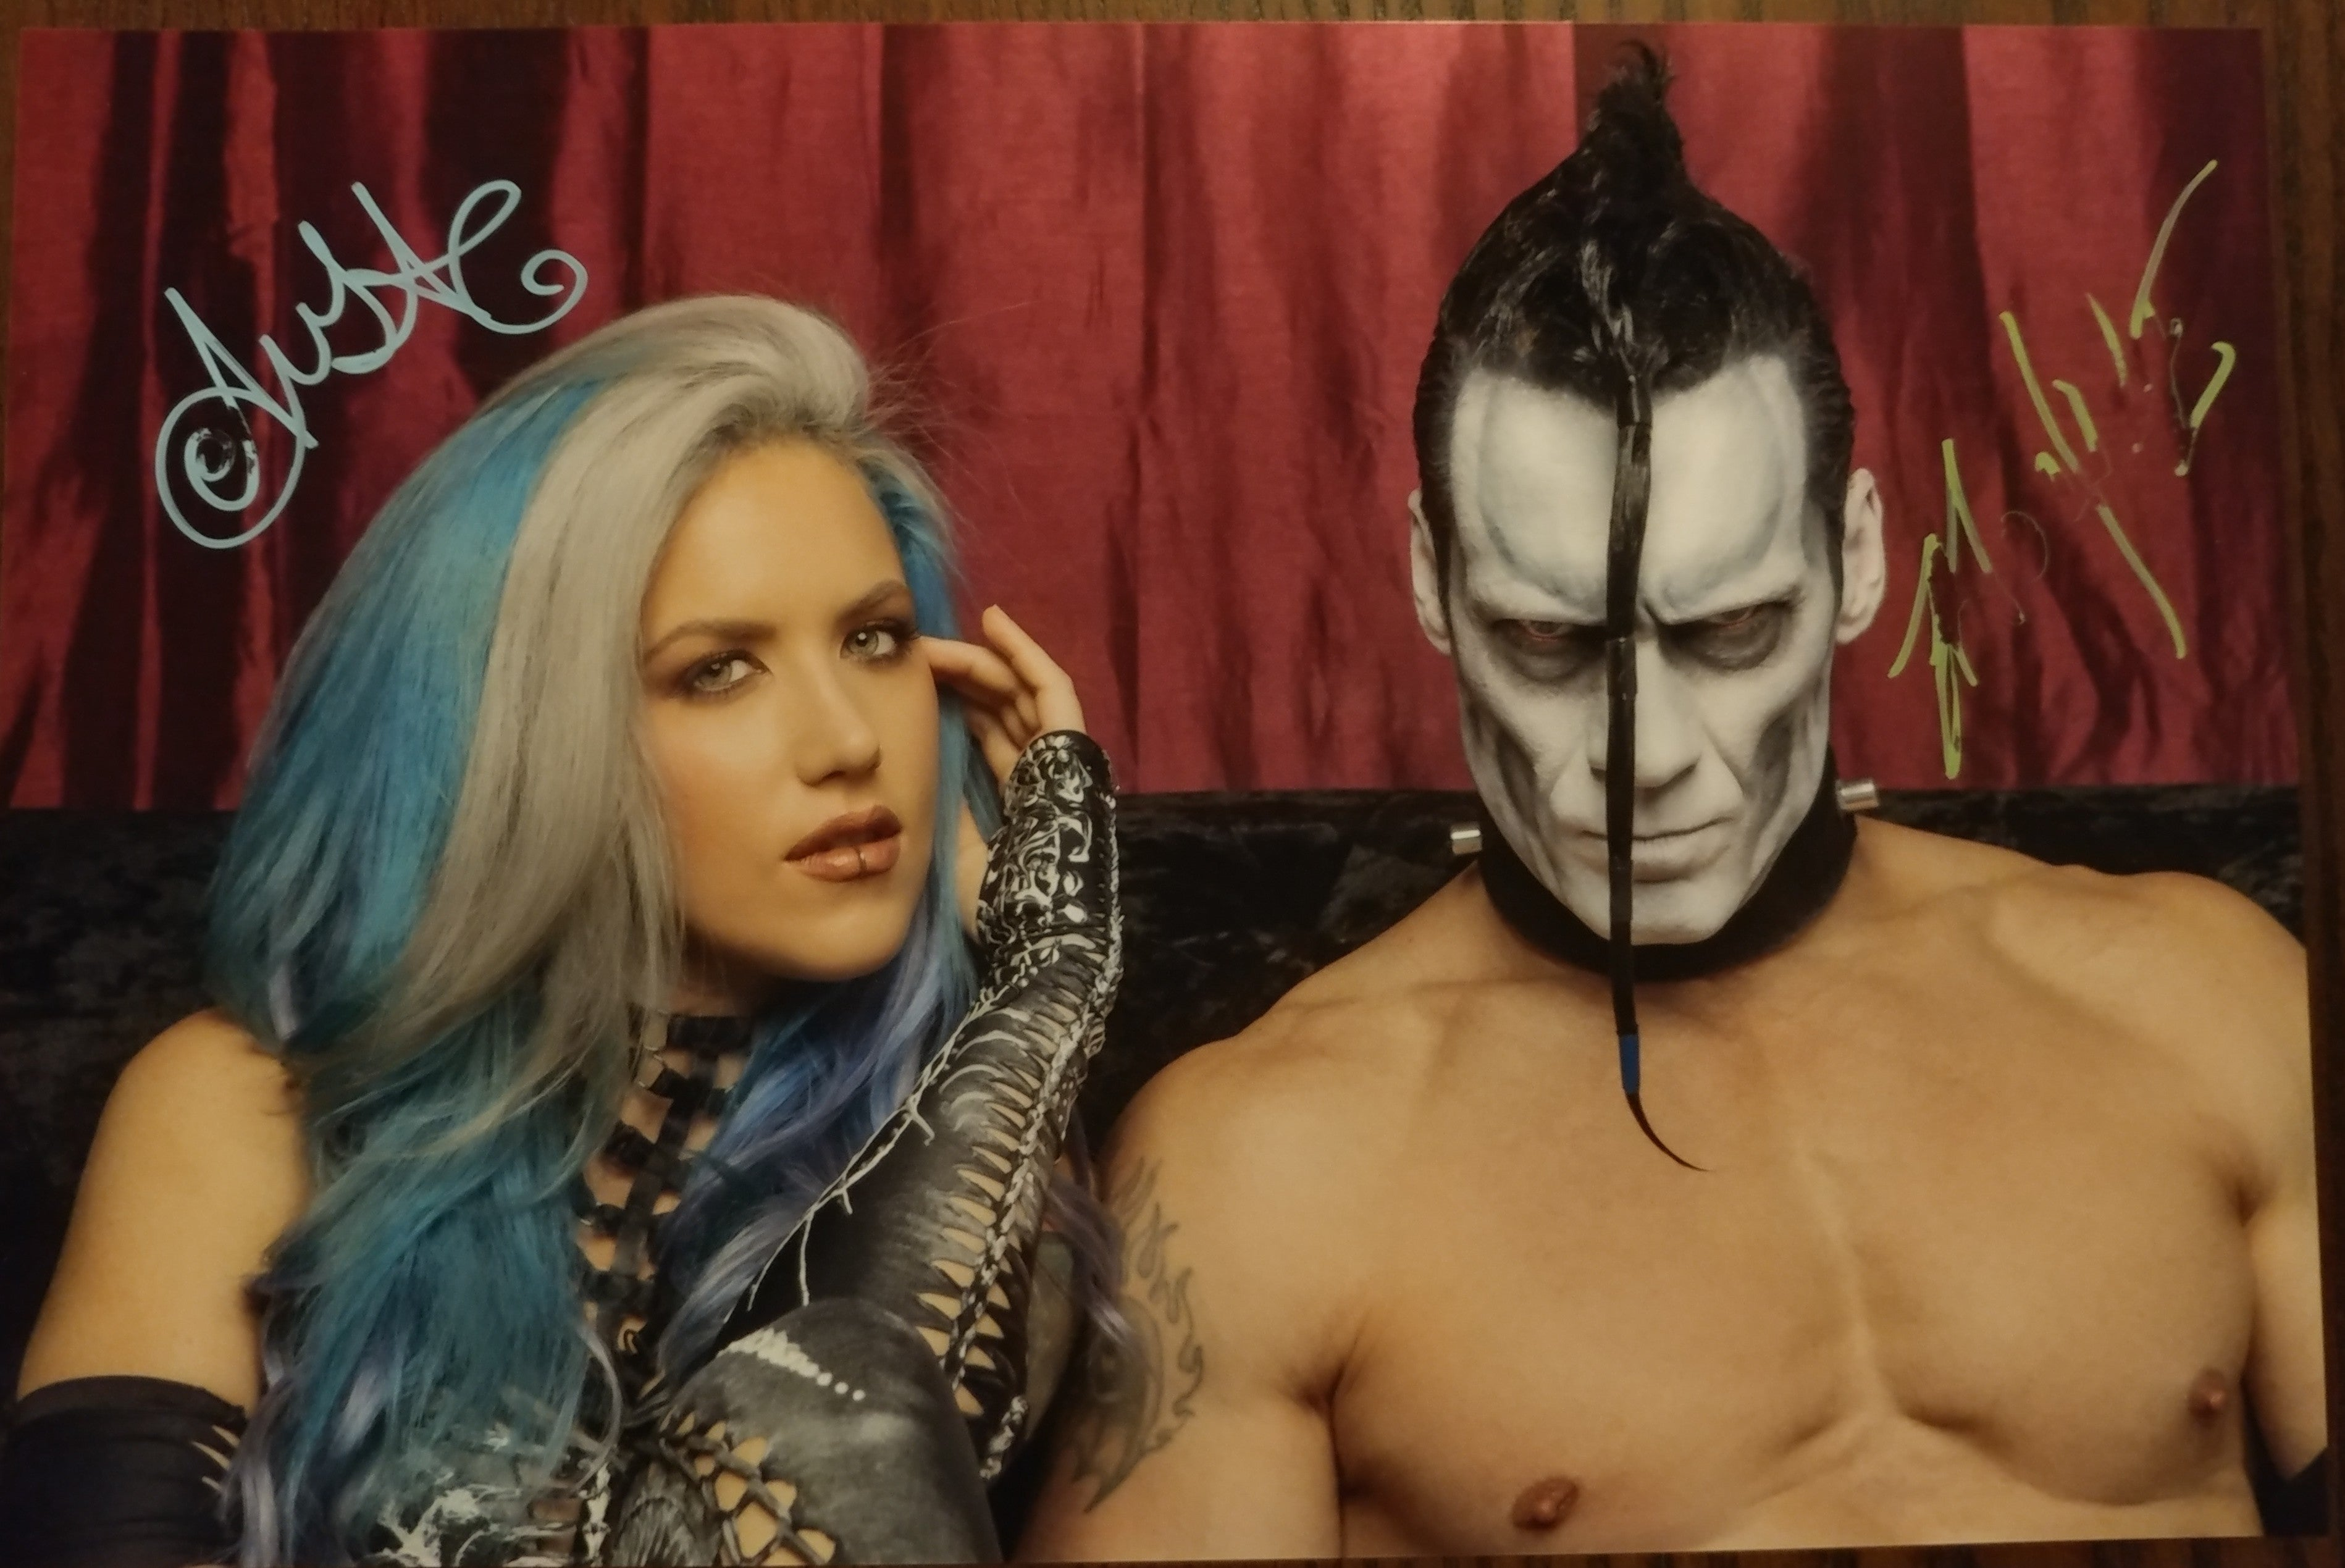 Alissa & Doyle Red and Black signed 8x12 print(smudged autograph)